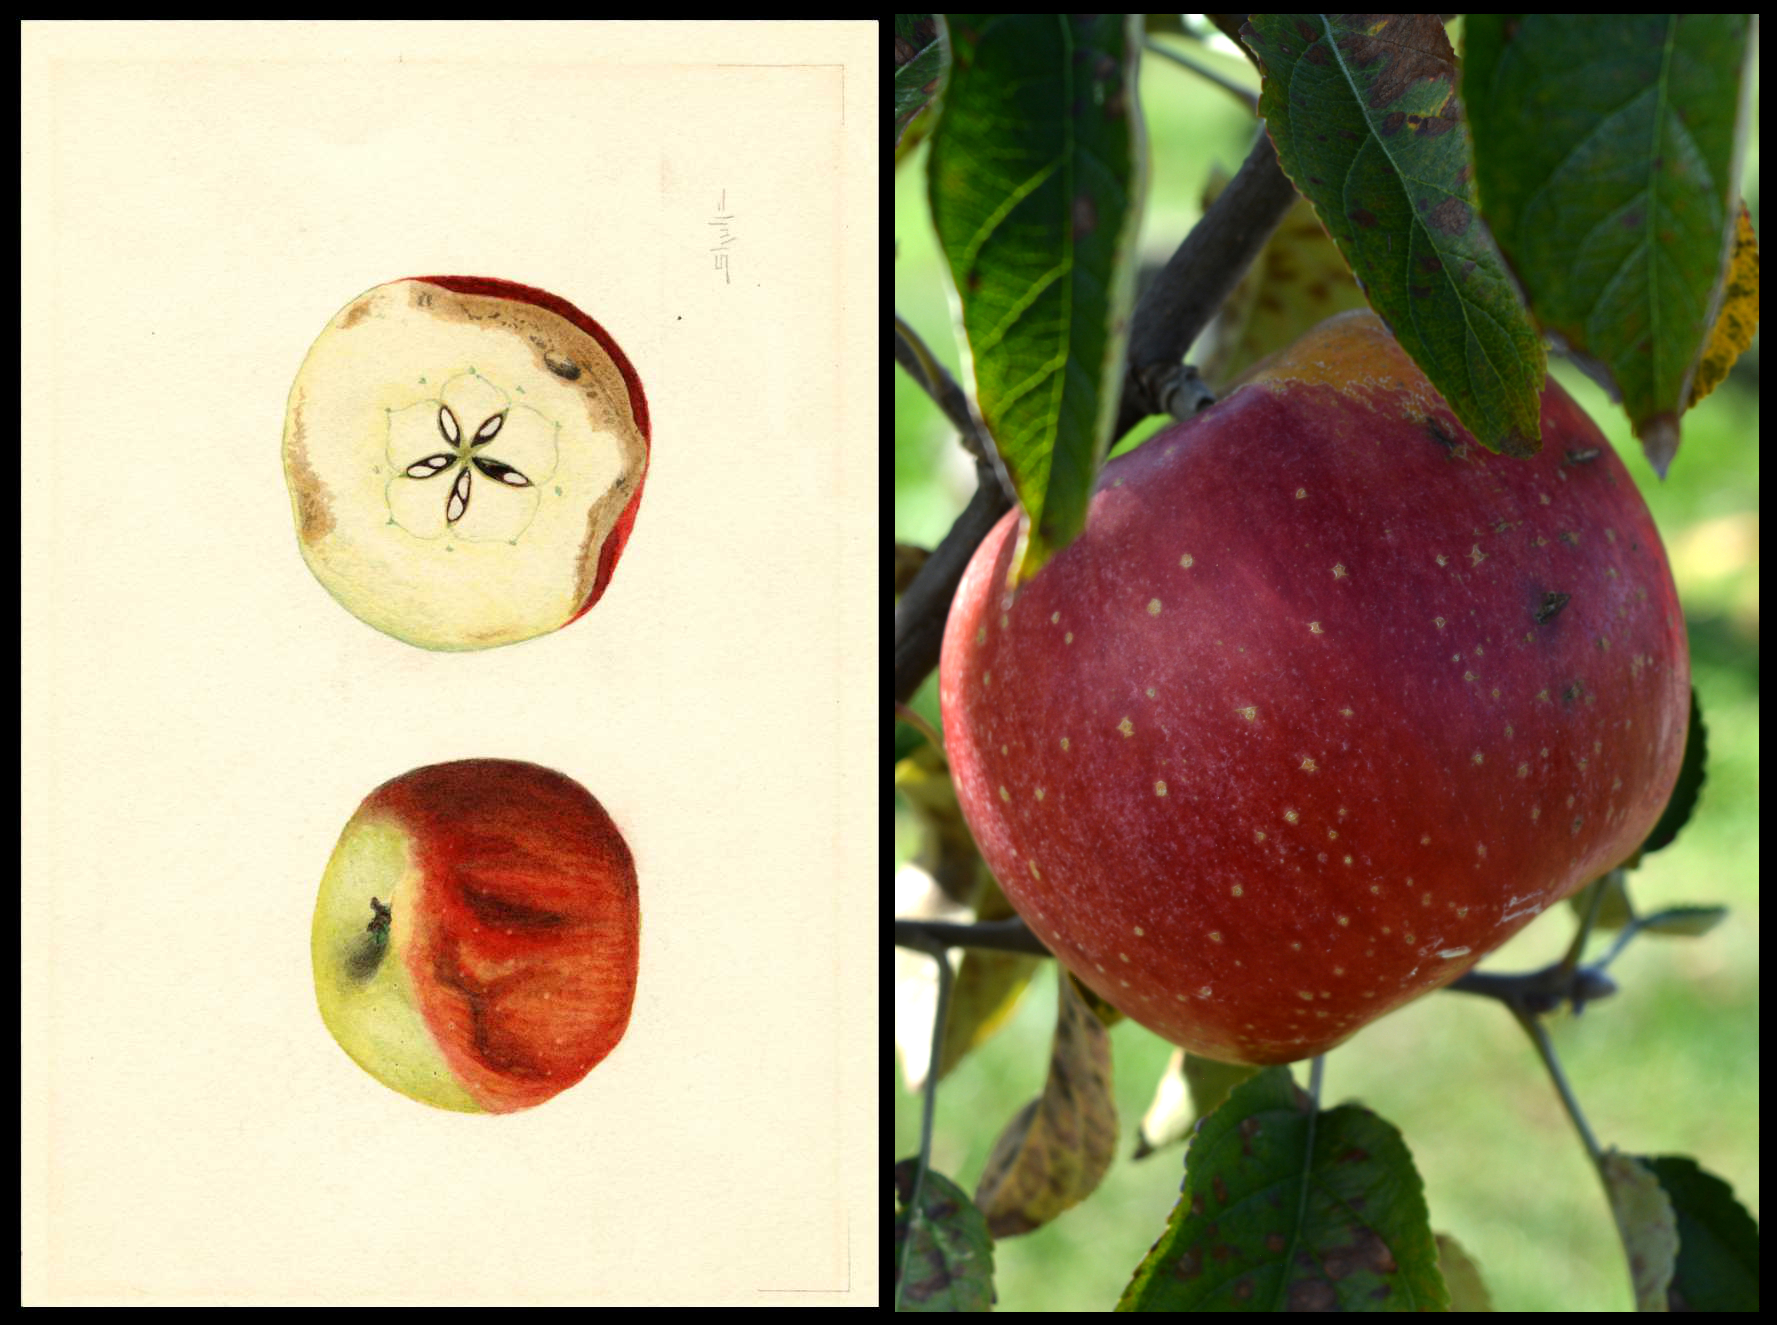 red apple with medium yellow dots and a patch of rough tan skin